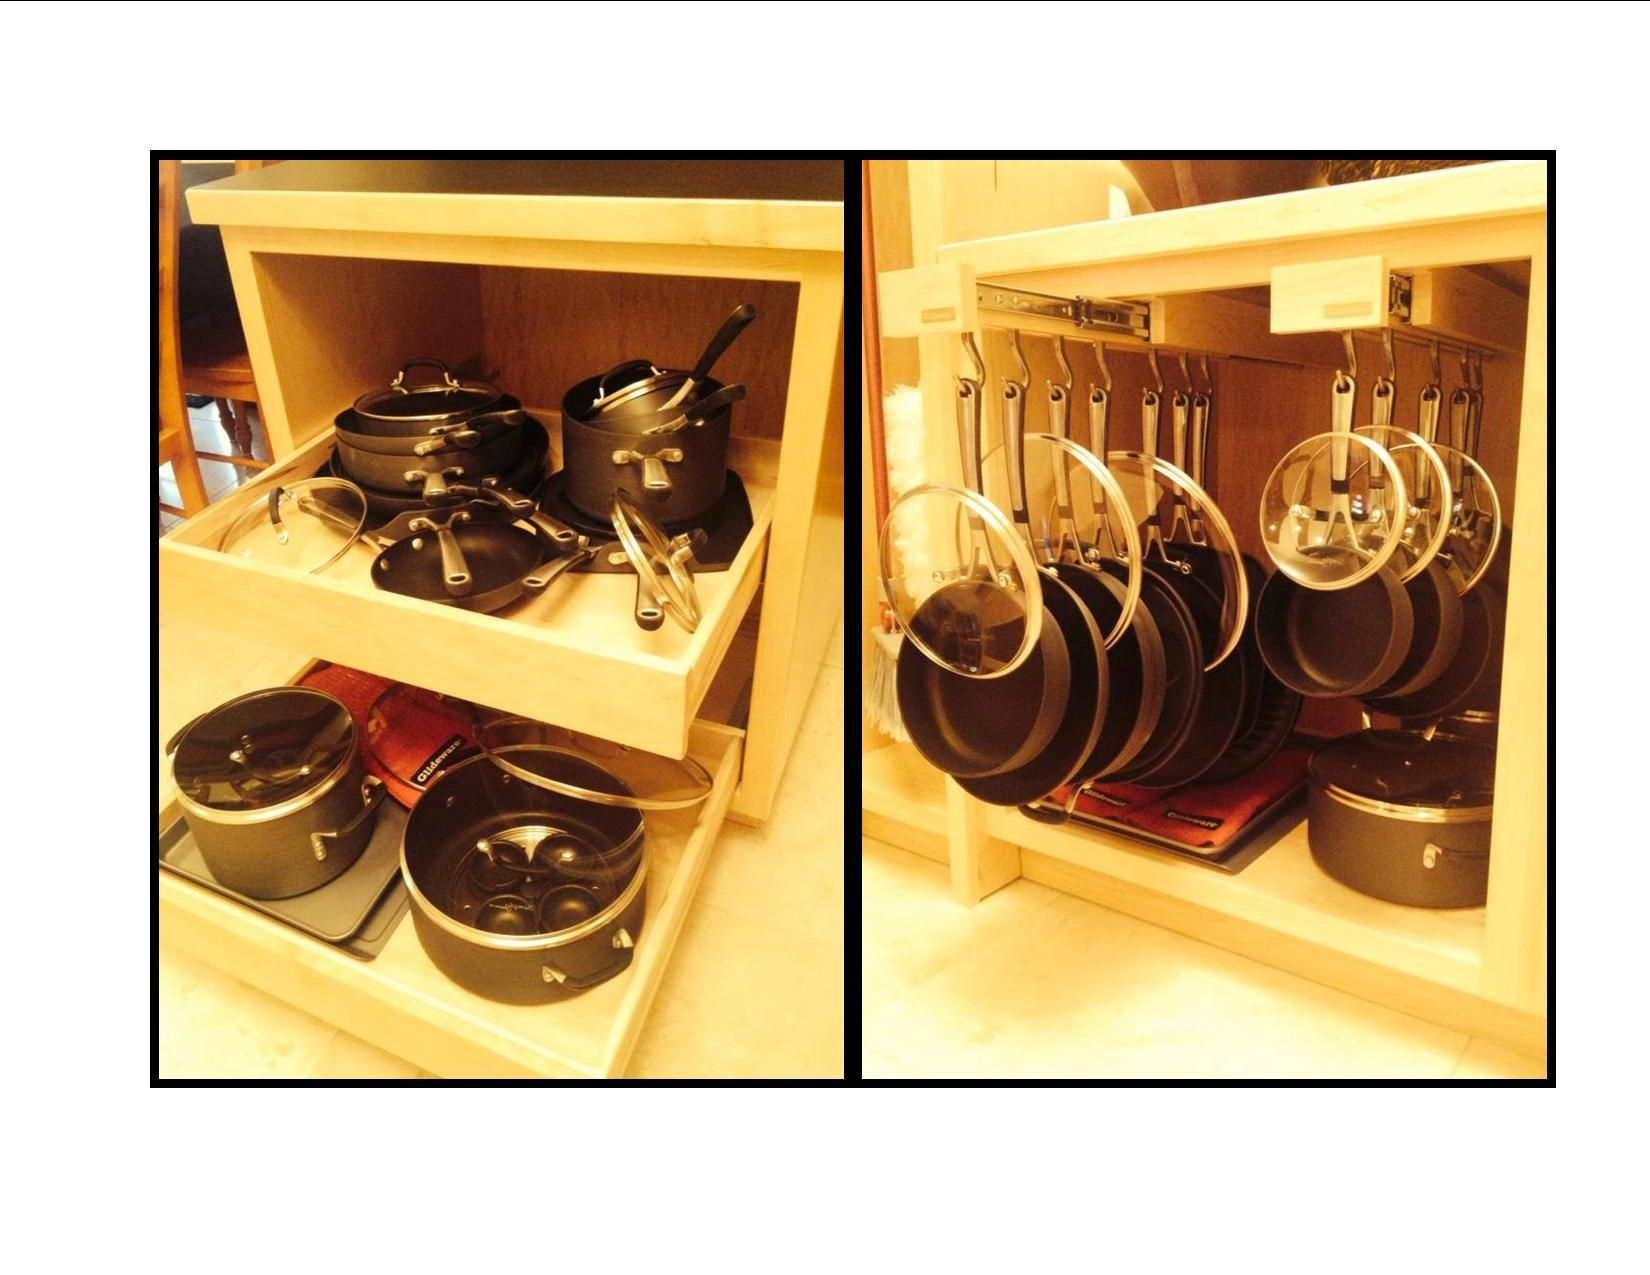 Glideware before and after. 27 pieces of cookware in a 27 inch ...